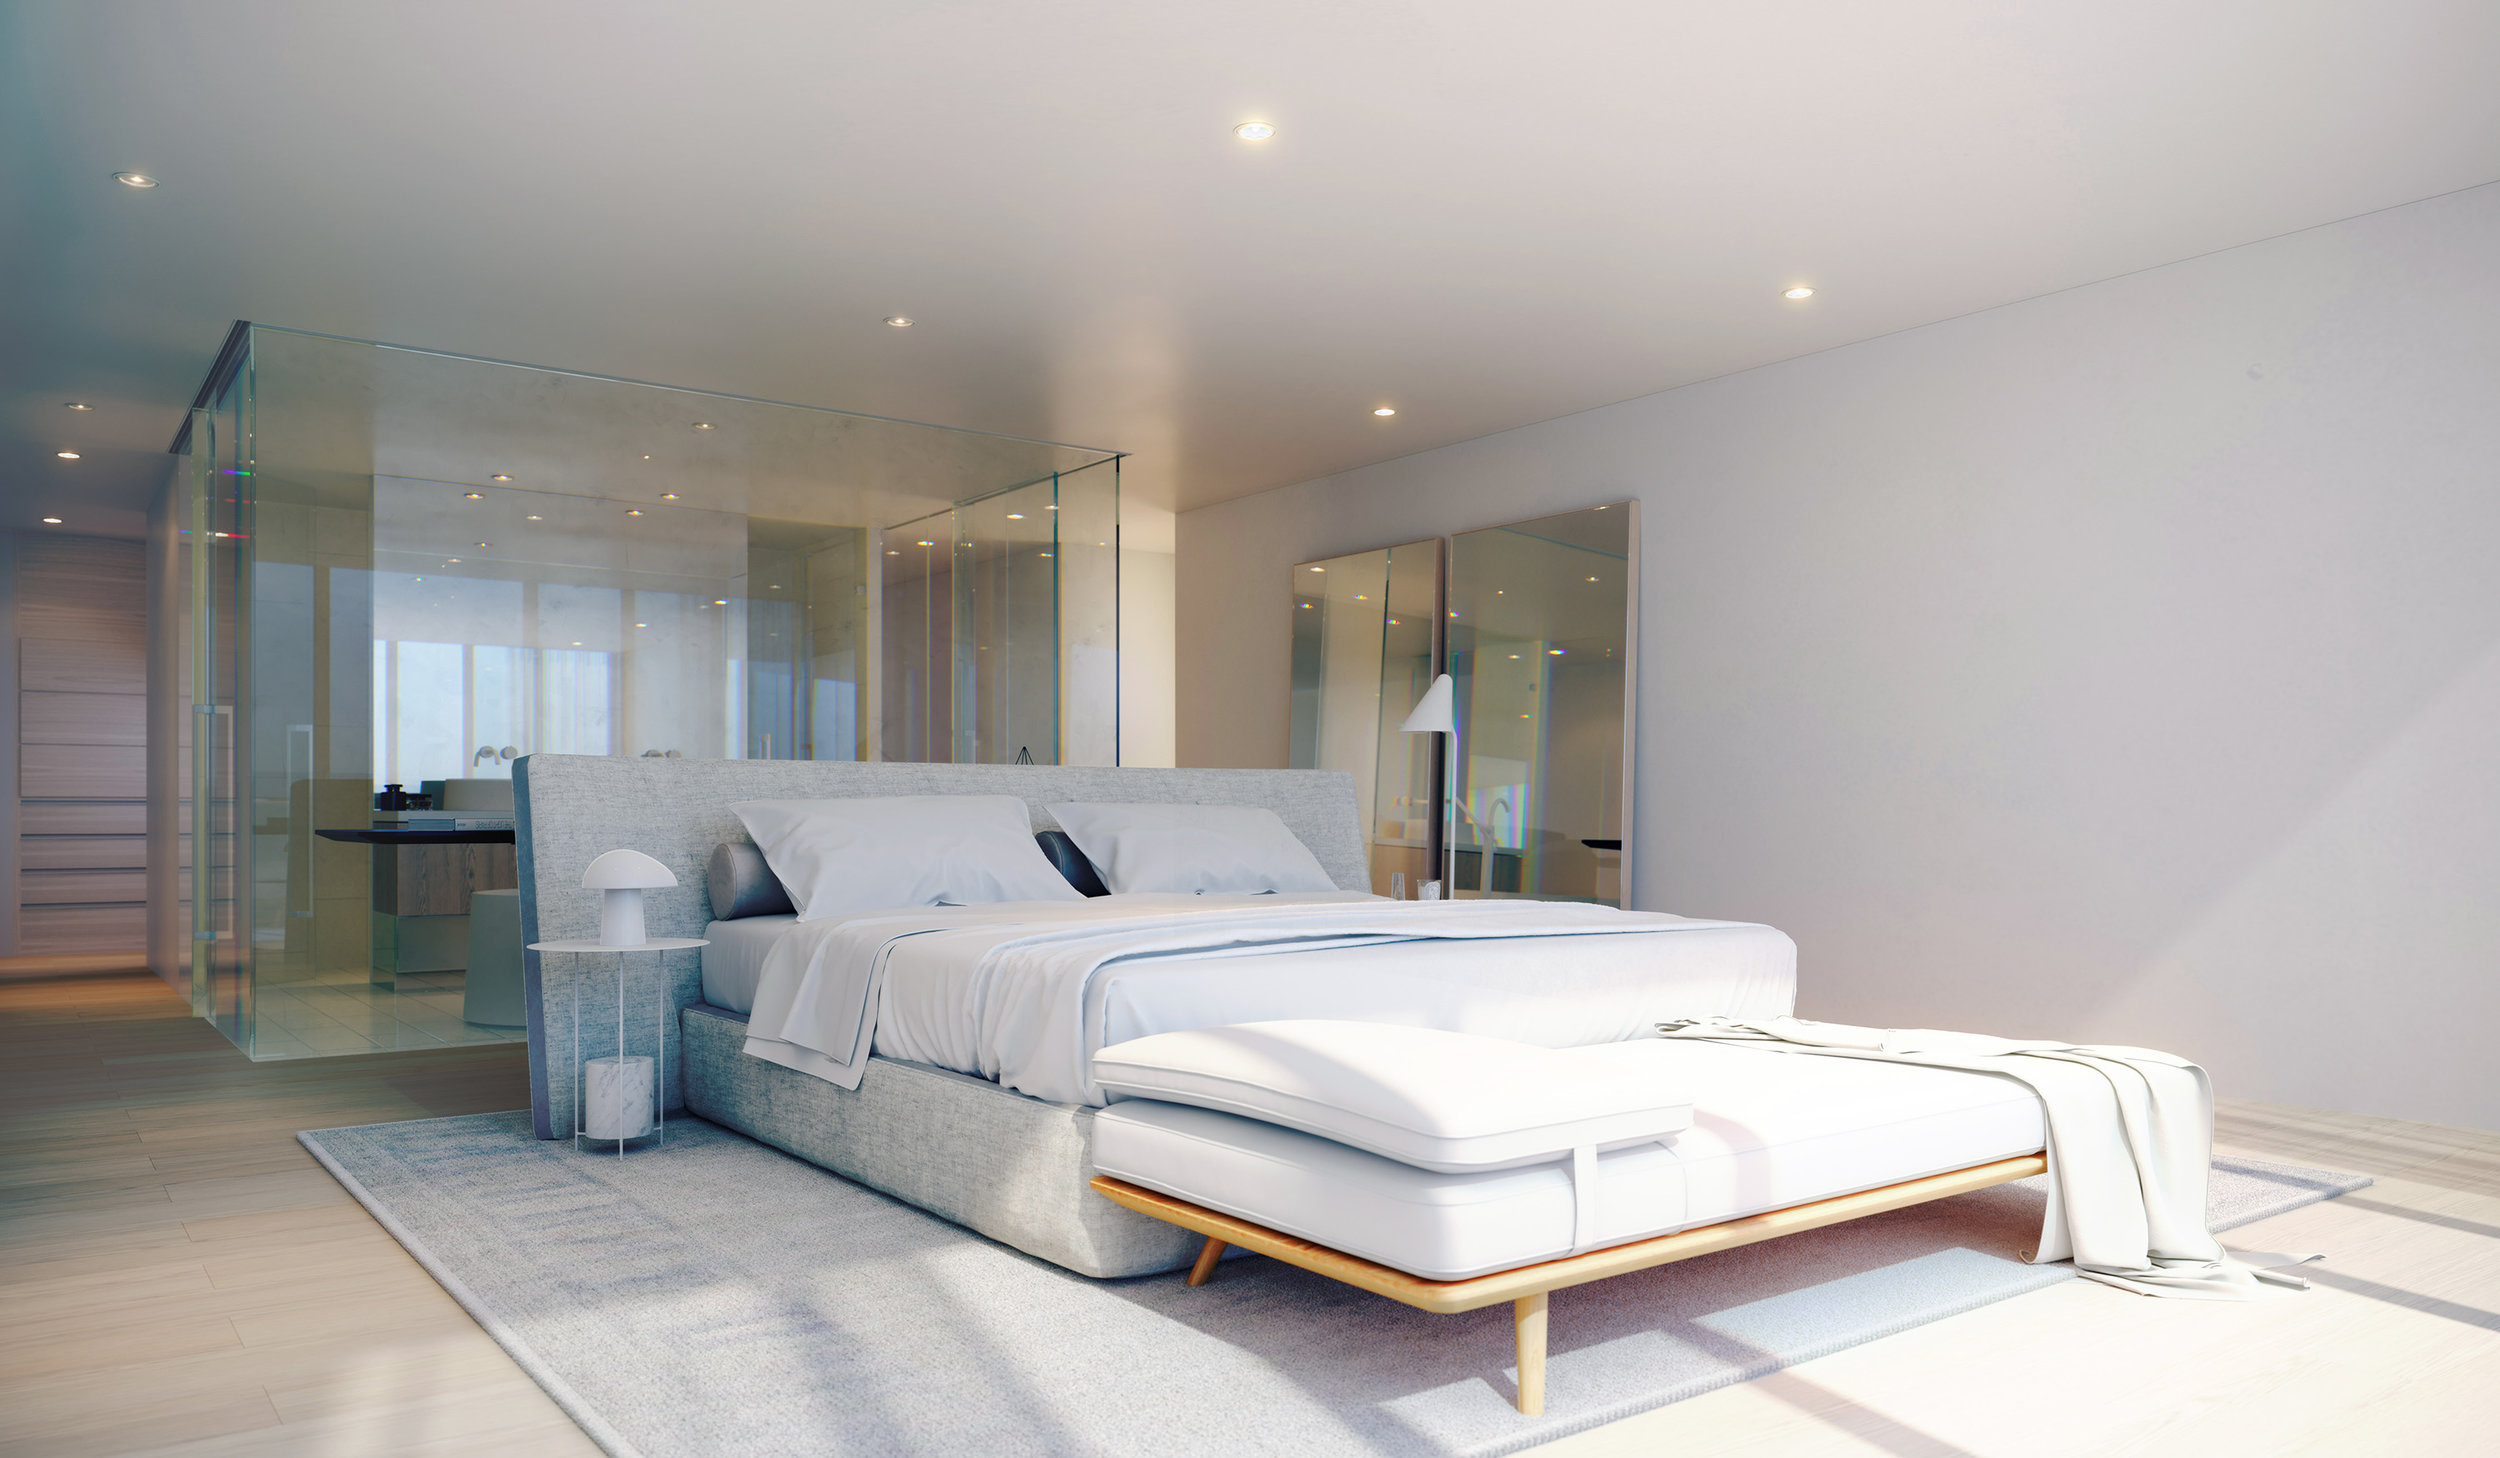 Penthouse main bedroom.